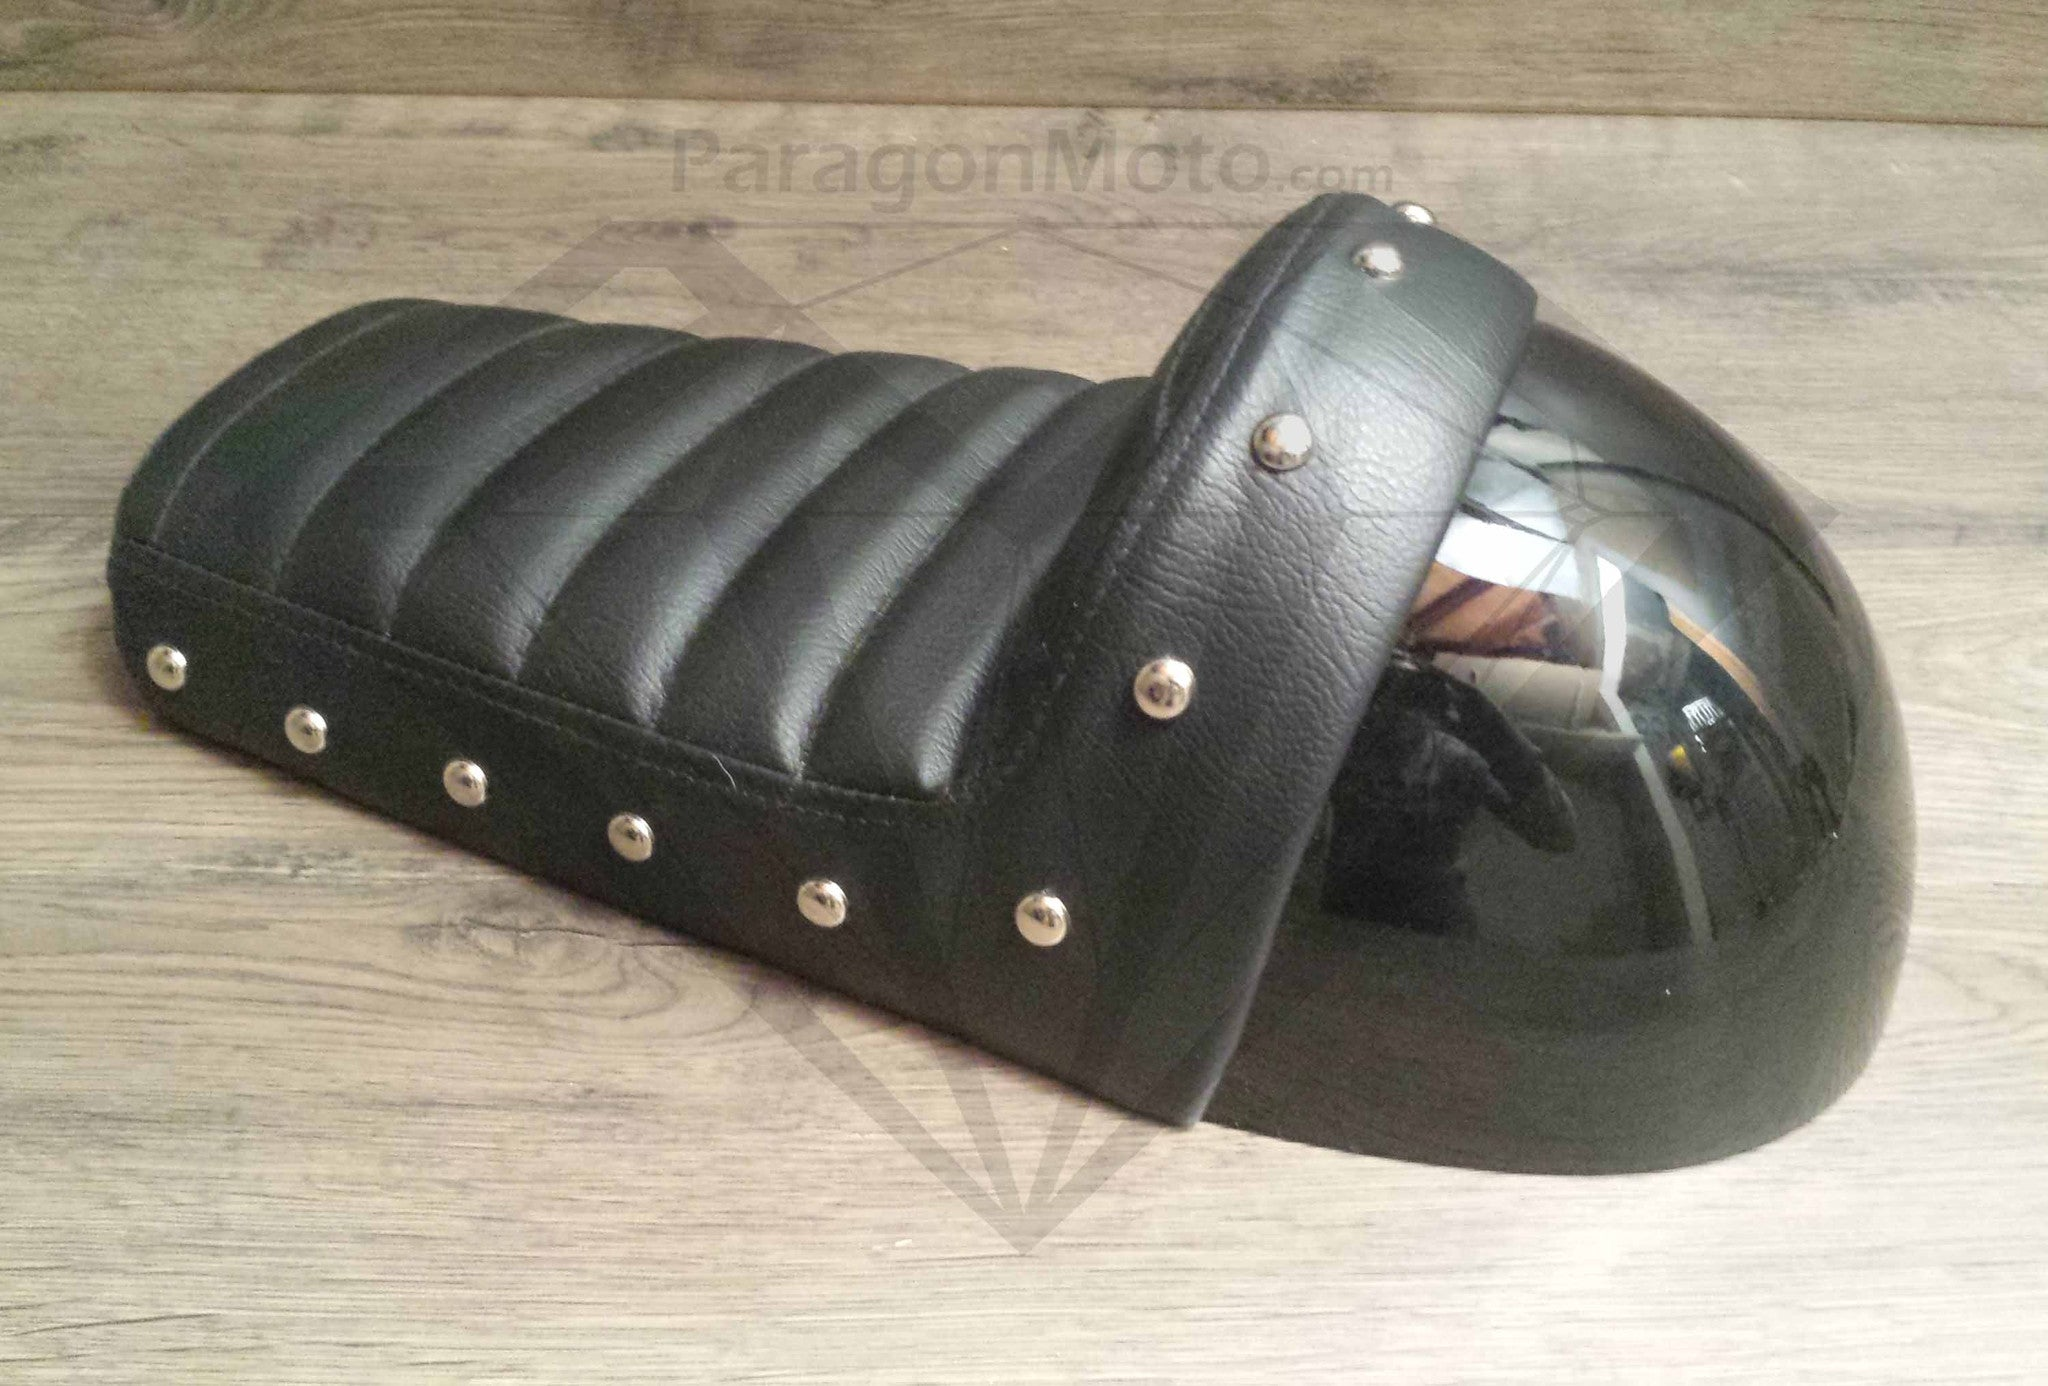 Black Studded Hump Seat - Leather Cushion and Bubble Back - Paragon Moto  - 1